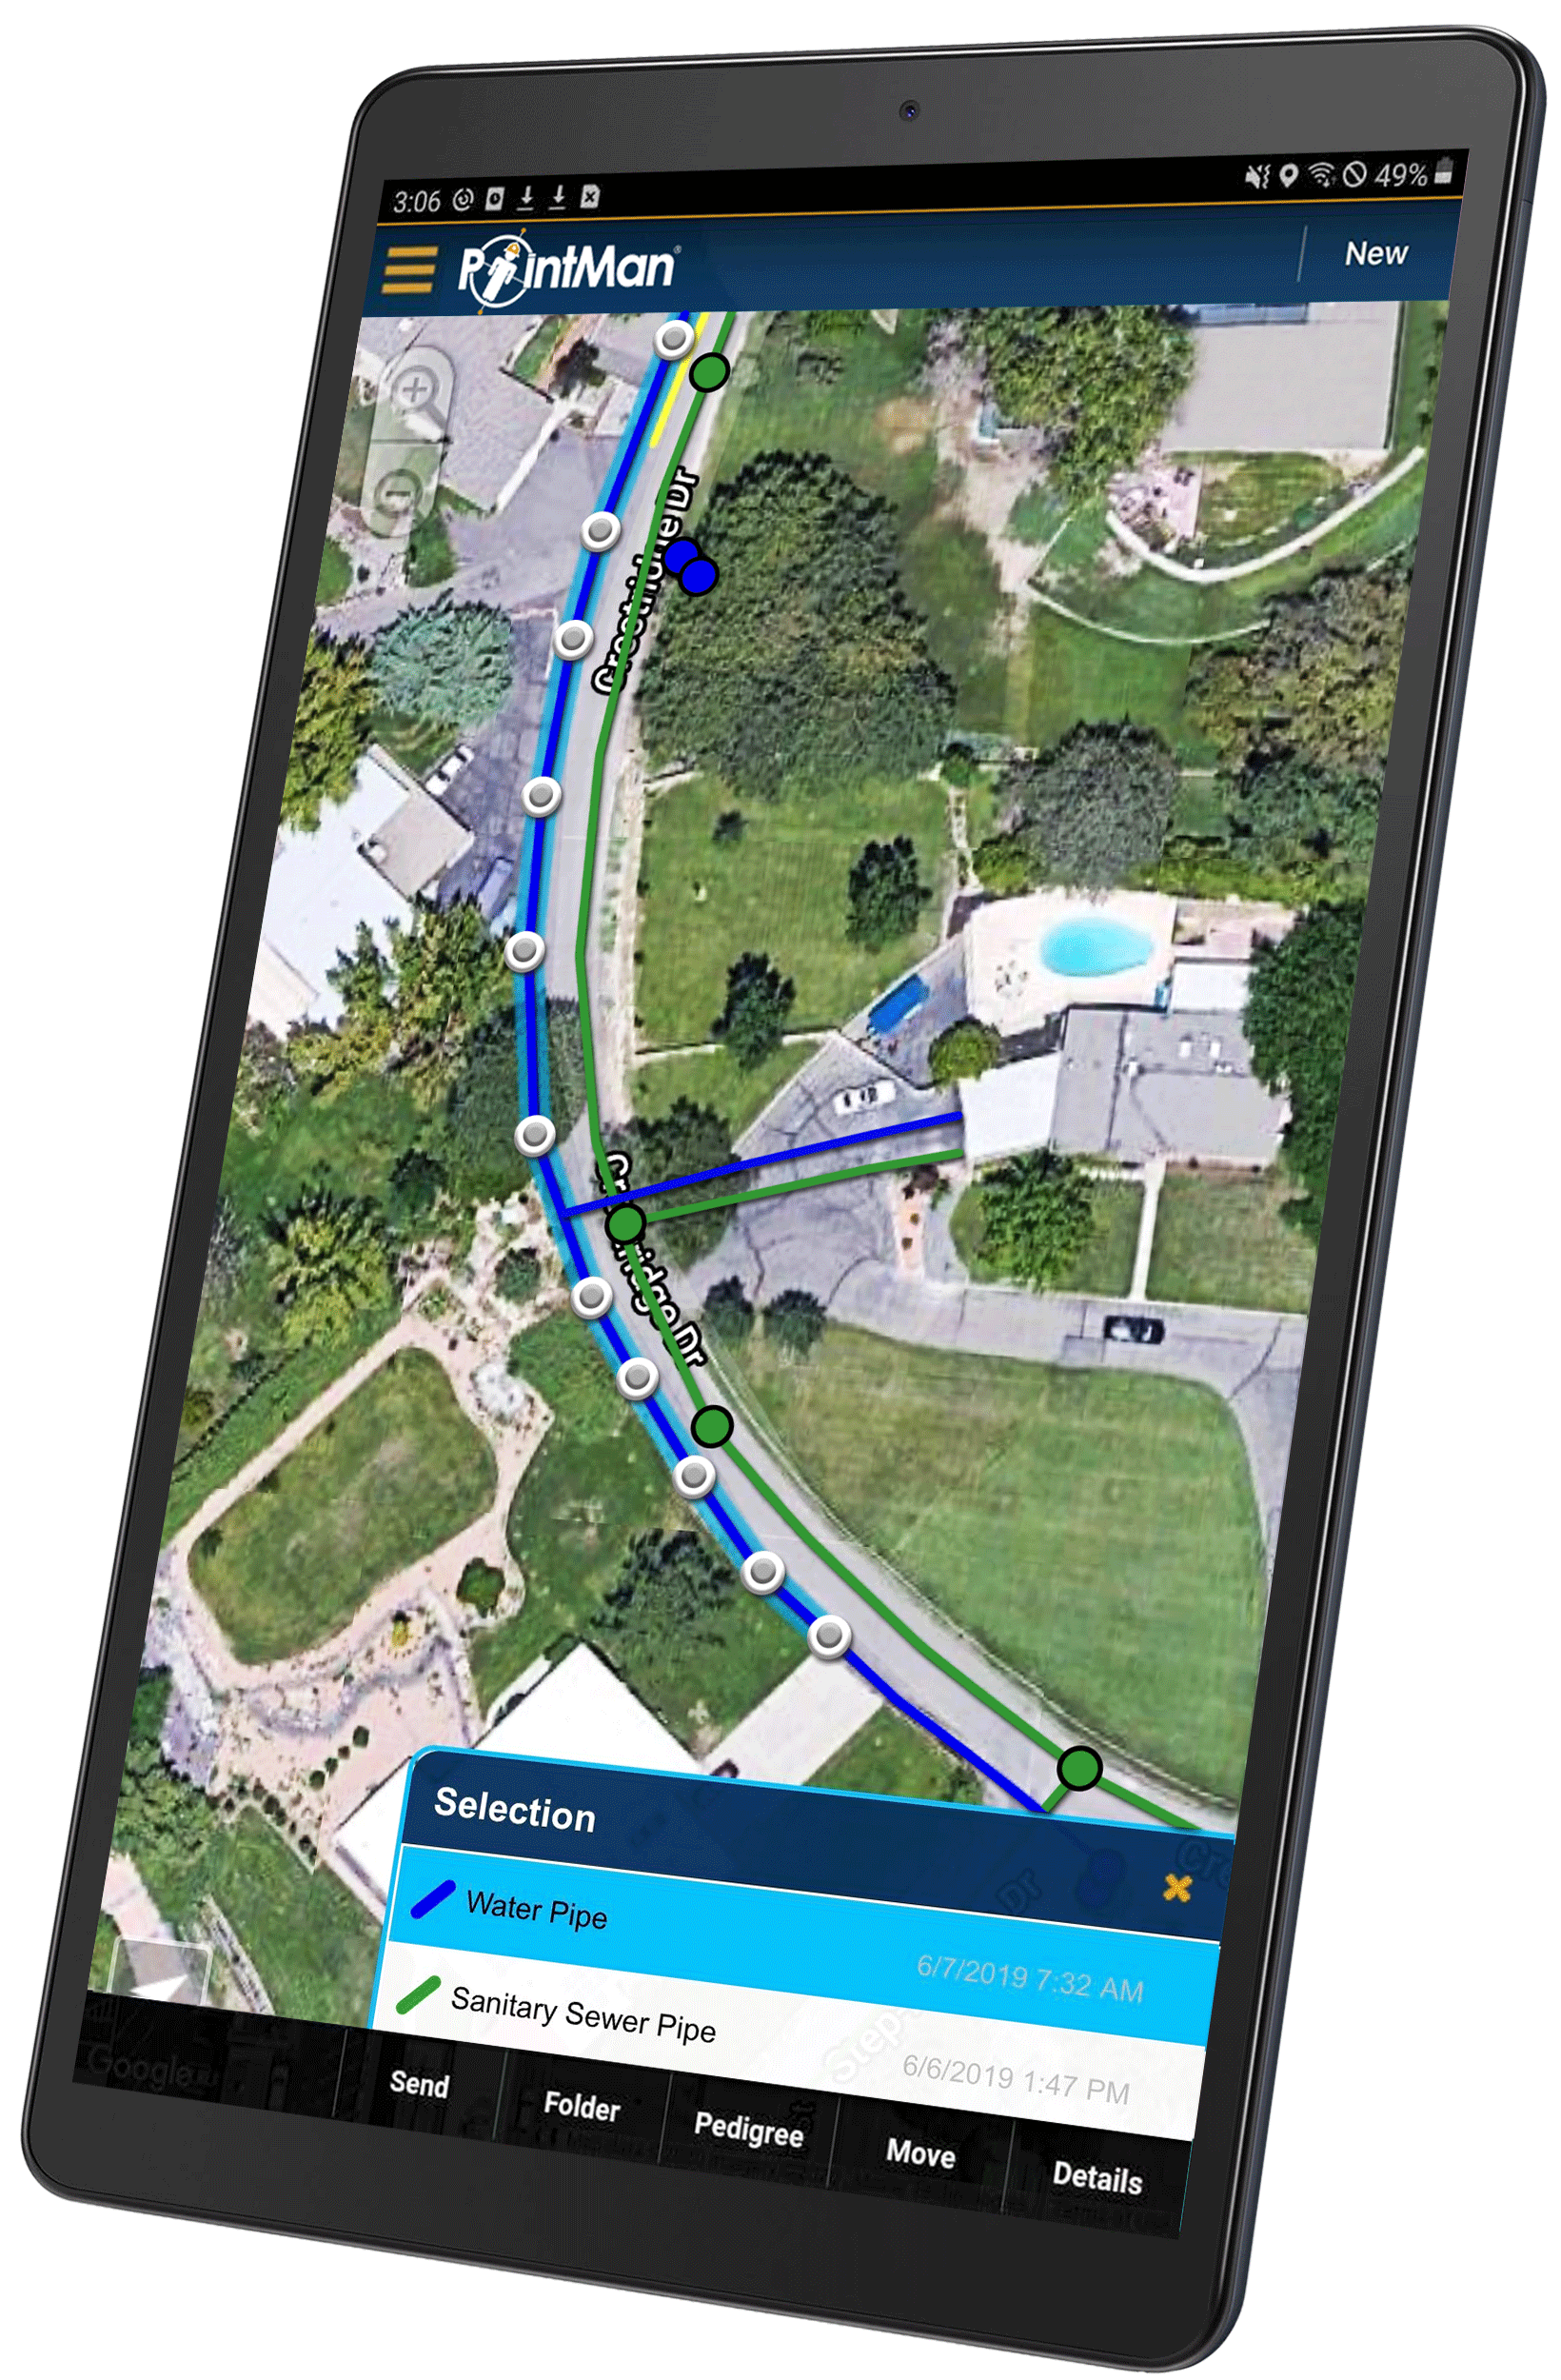 PointMan Utility Locating & Mapping App